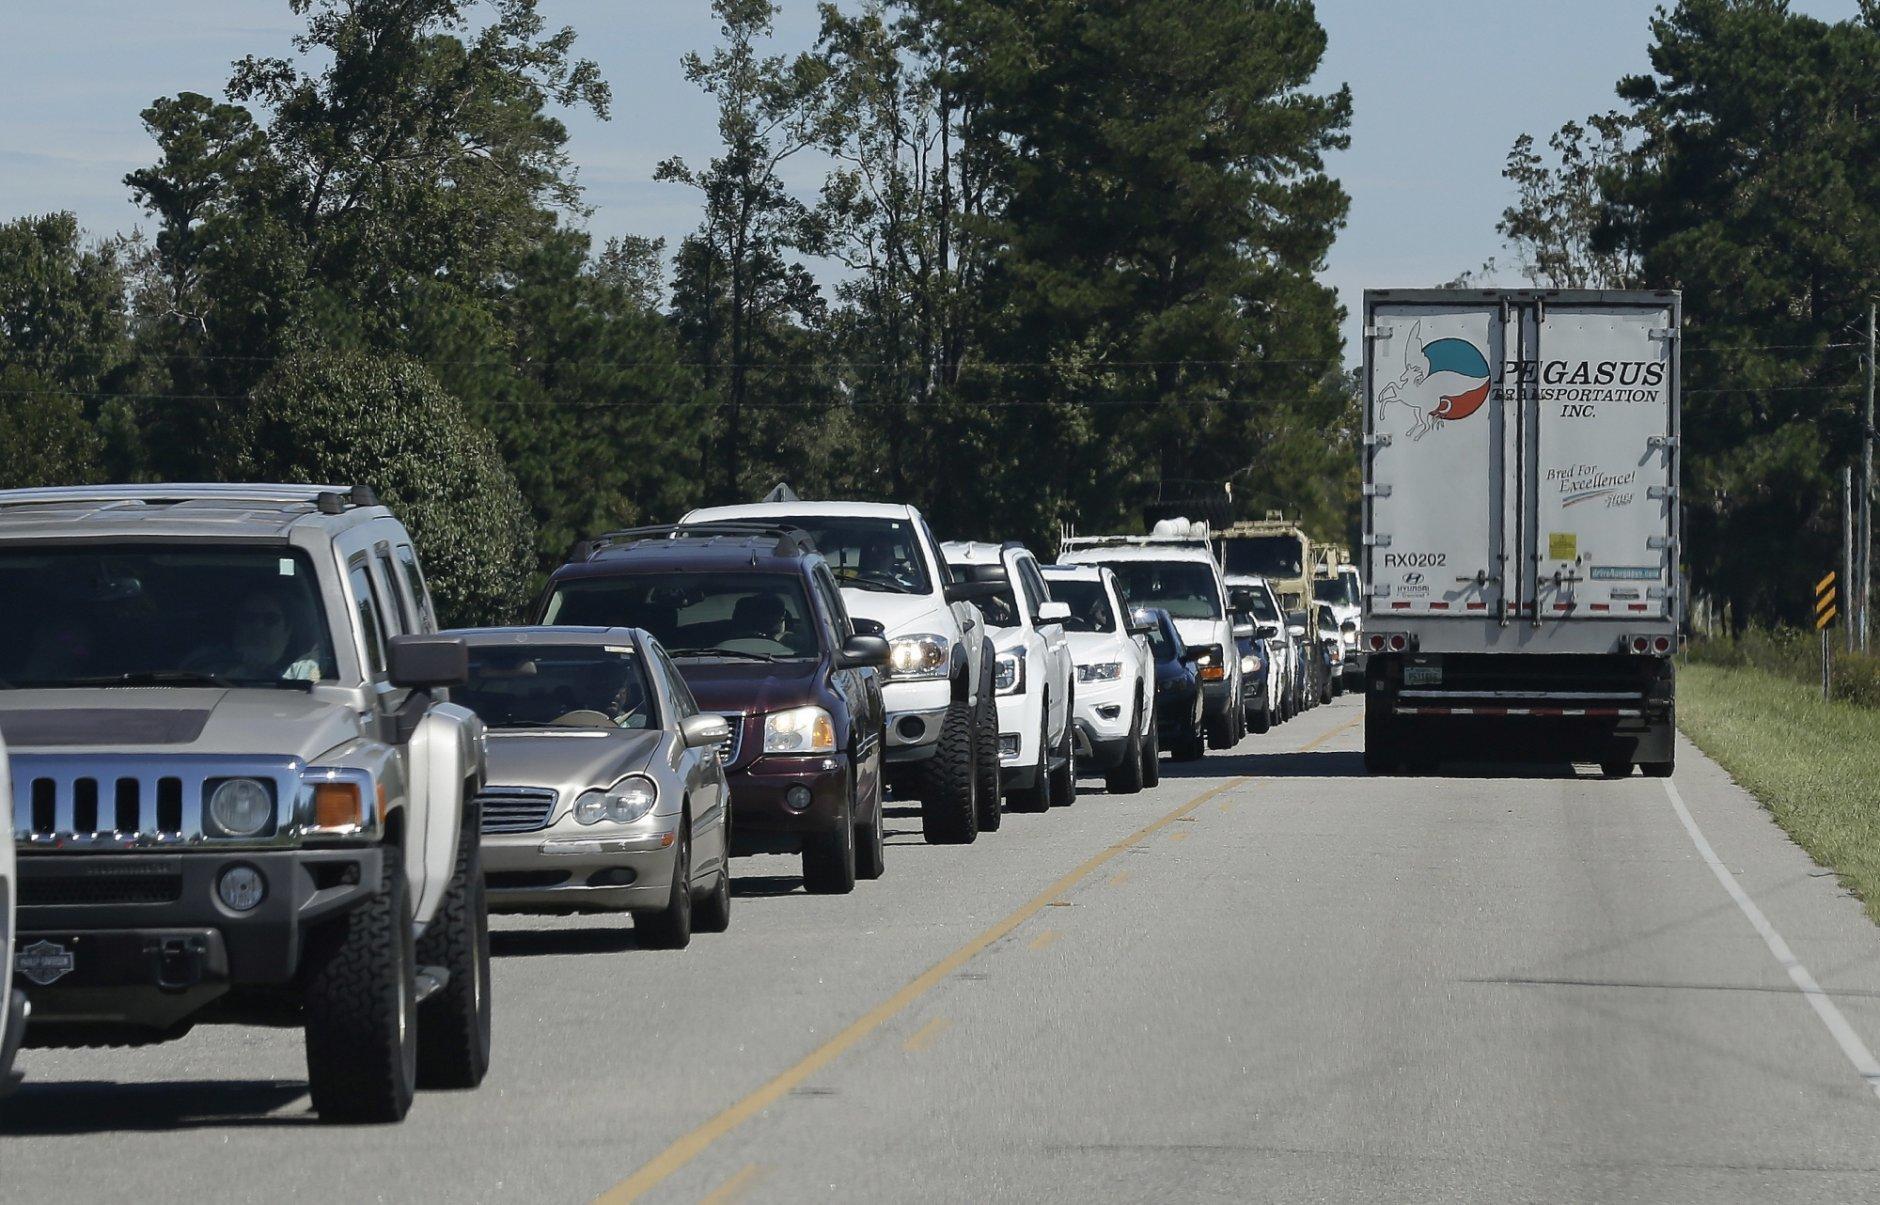 Vehicles are backed up along N.C. Highway 301 while attempting to navigate to Lumberton, N.C., Tuesday, Sept. 18, 2018 following flooding and road closures resulting from Hurricane Florence. (AP Photo/Gerry Broome)